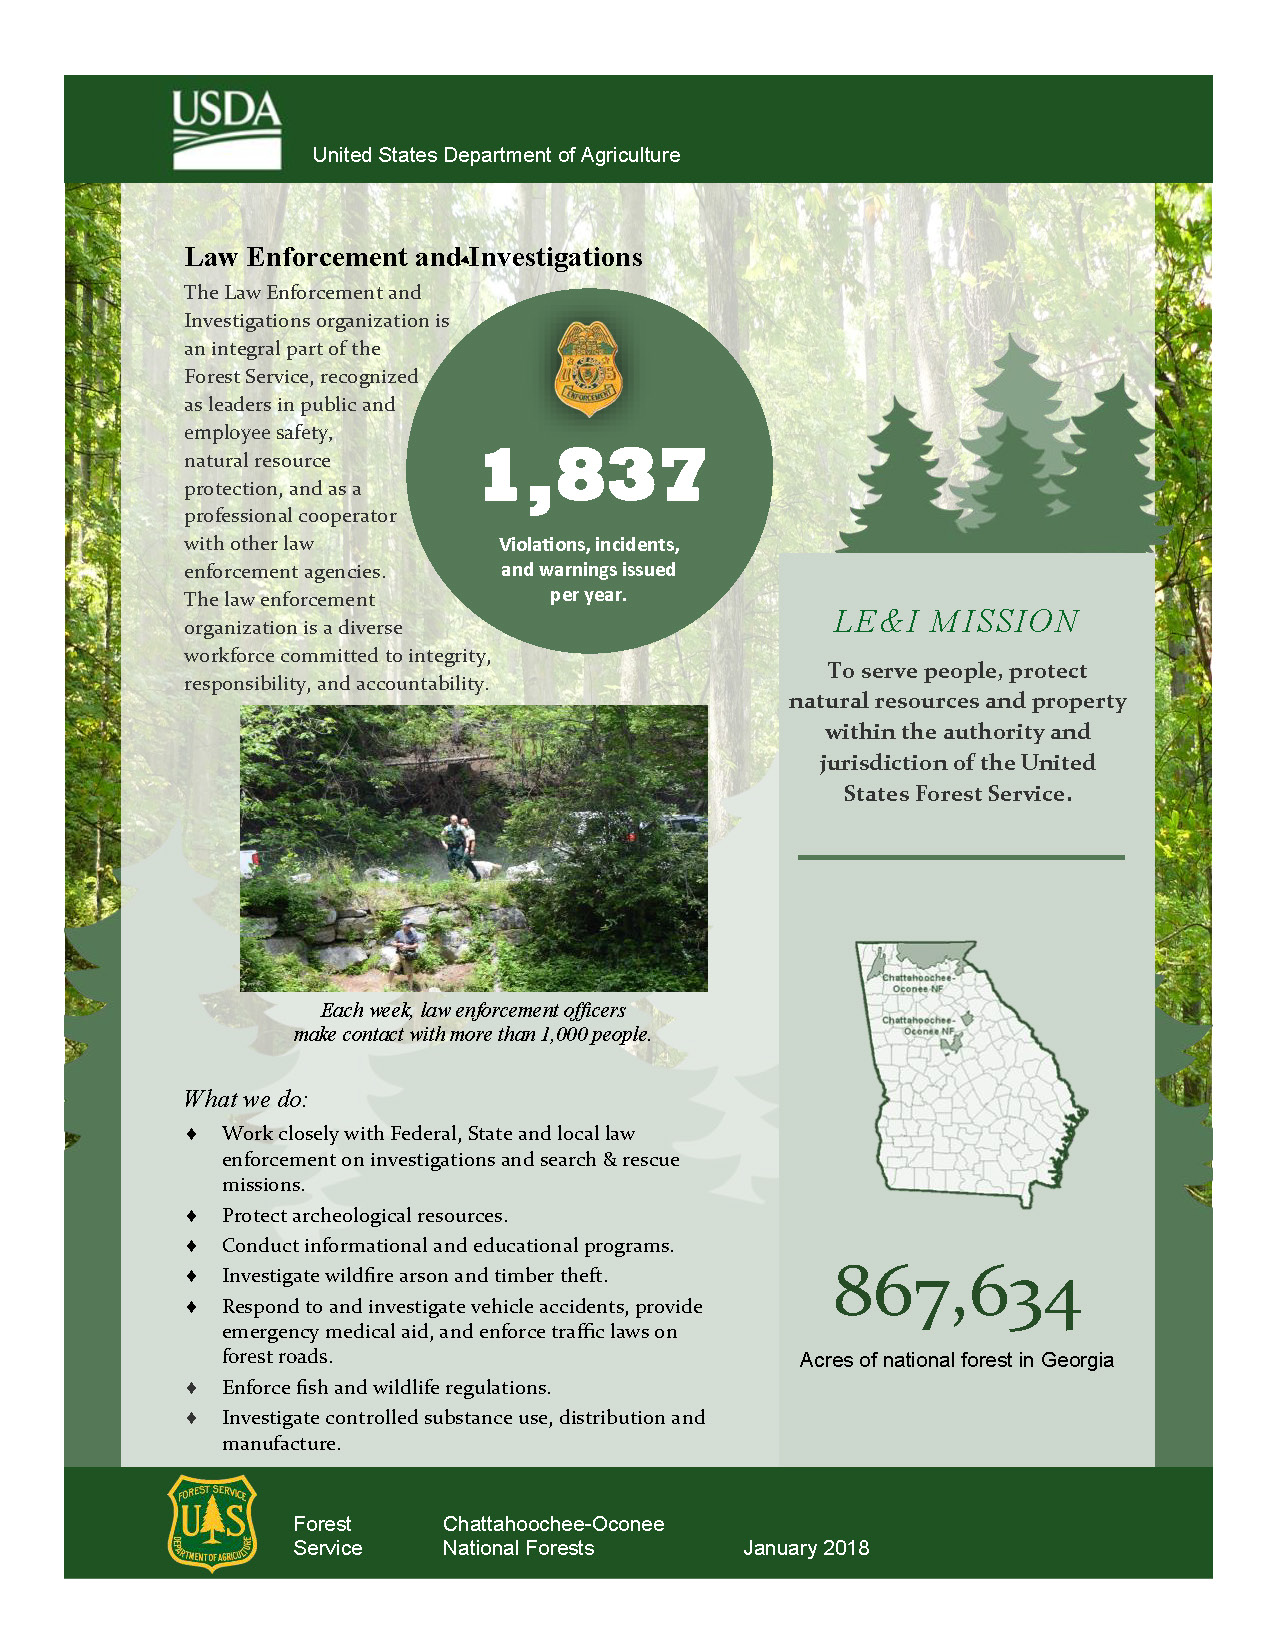 Forest Service Law Enforcement & Investigations